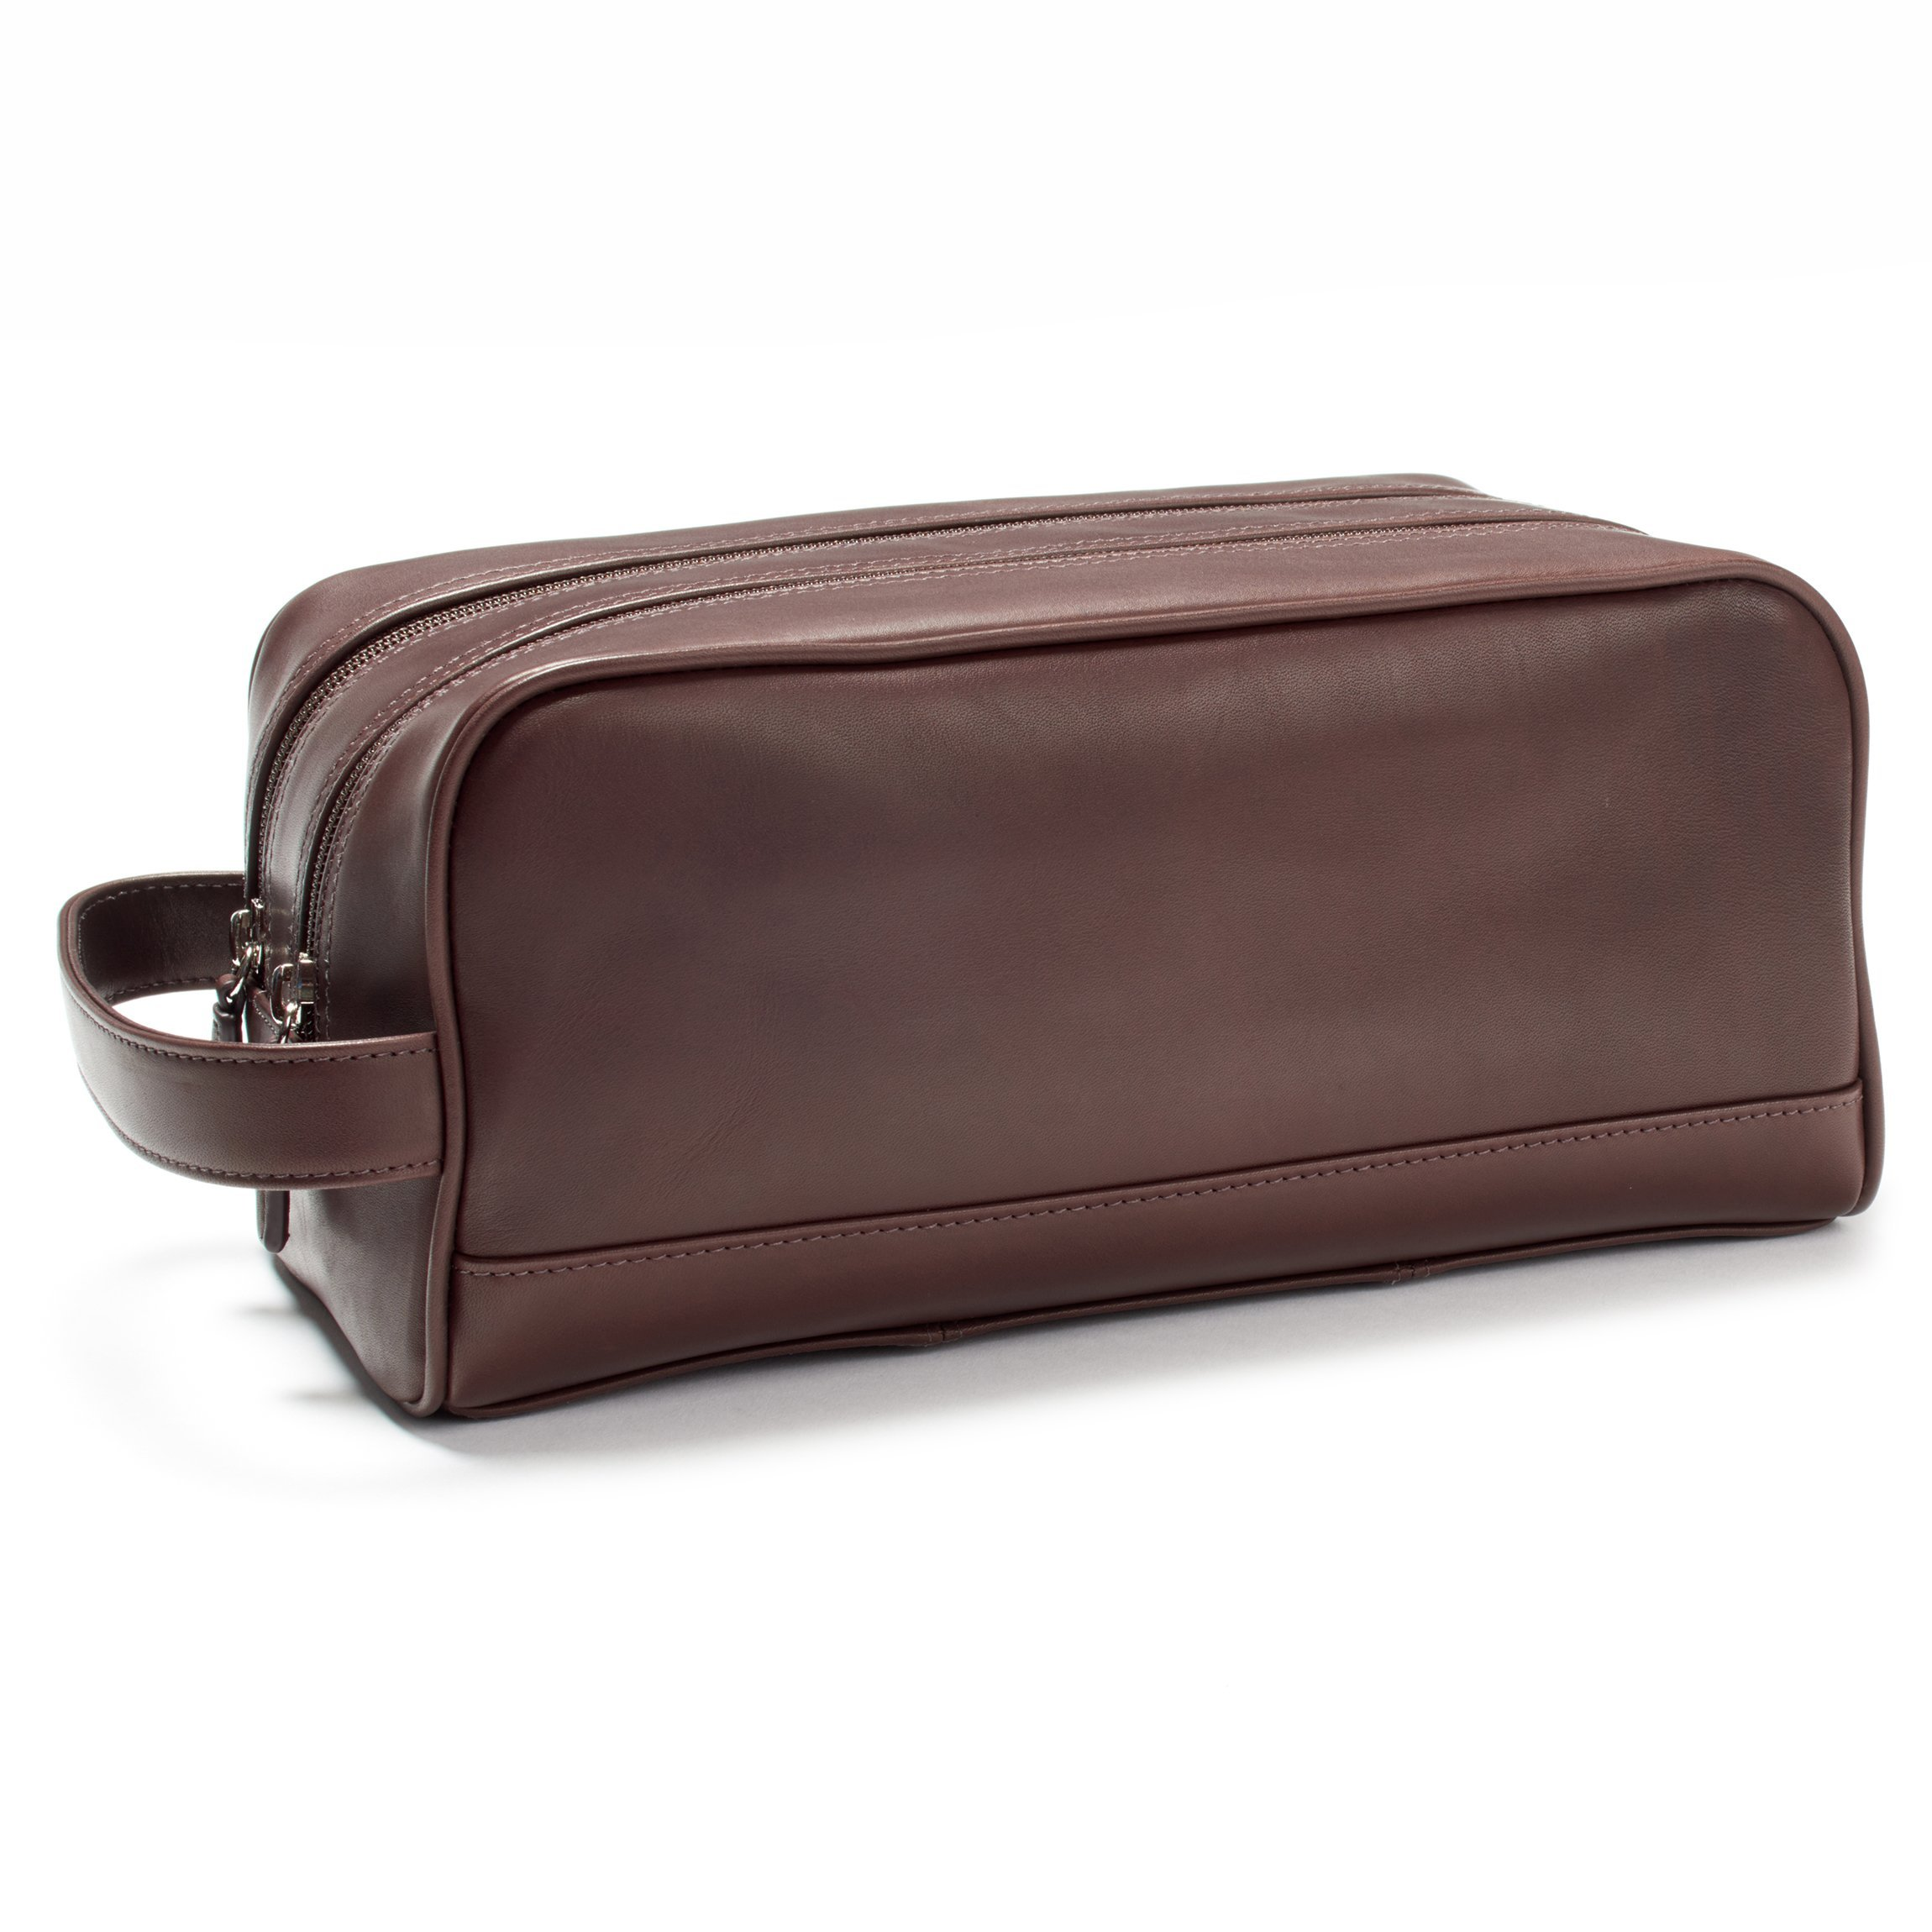 Leatherology Double Zip Toiletry Bag - Full Grain German Leather Leather - Mahogany (brown)